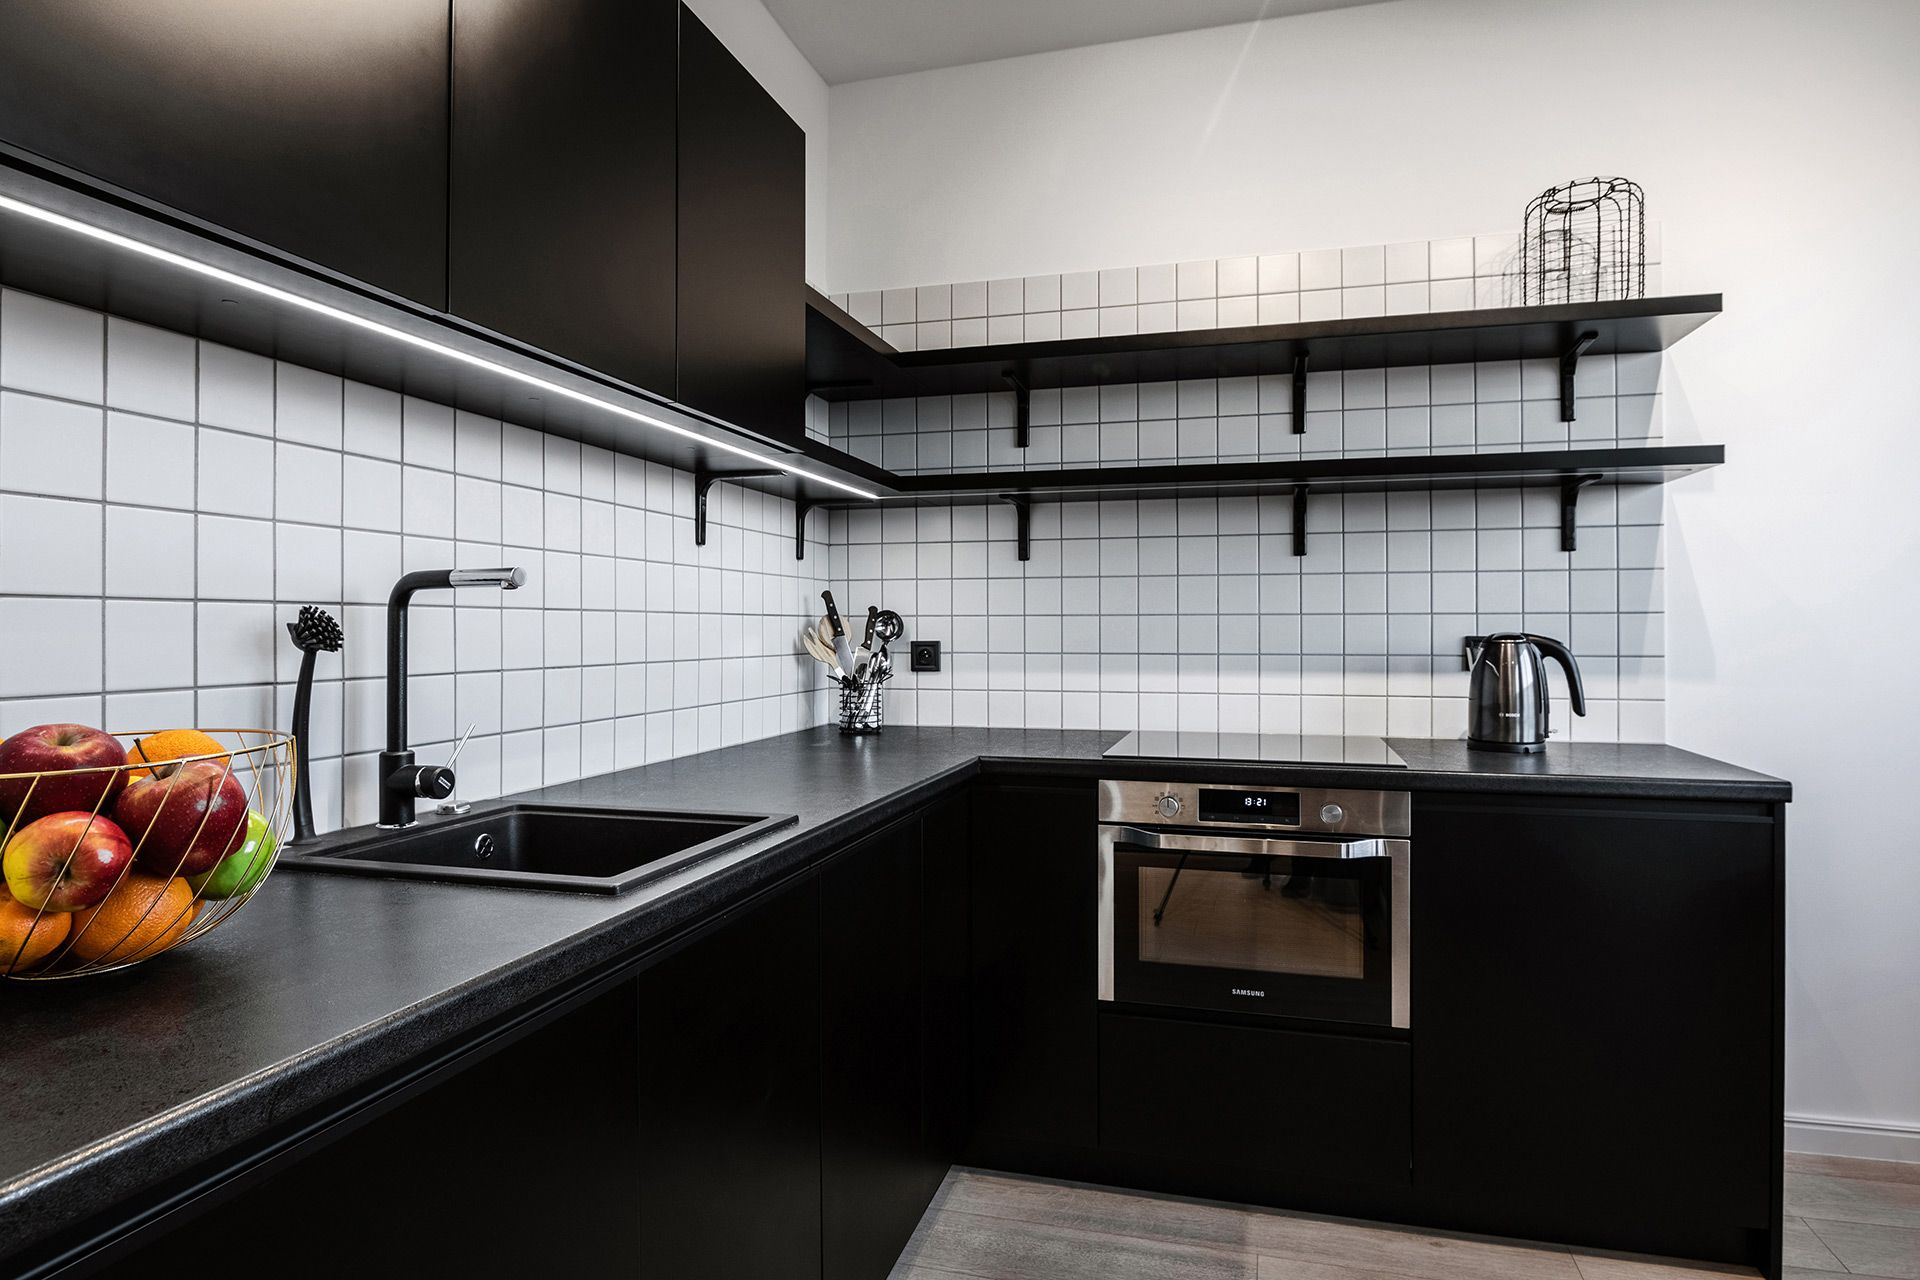 Studio - Large apartment to rent in Warsaw UPR-A-044-1